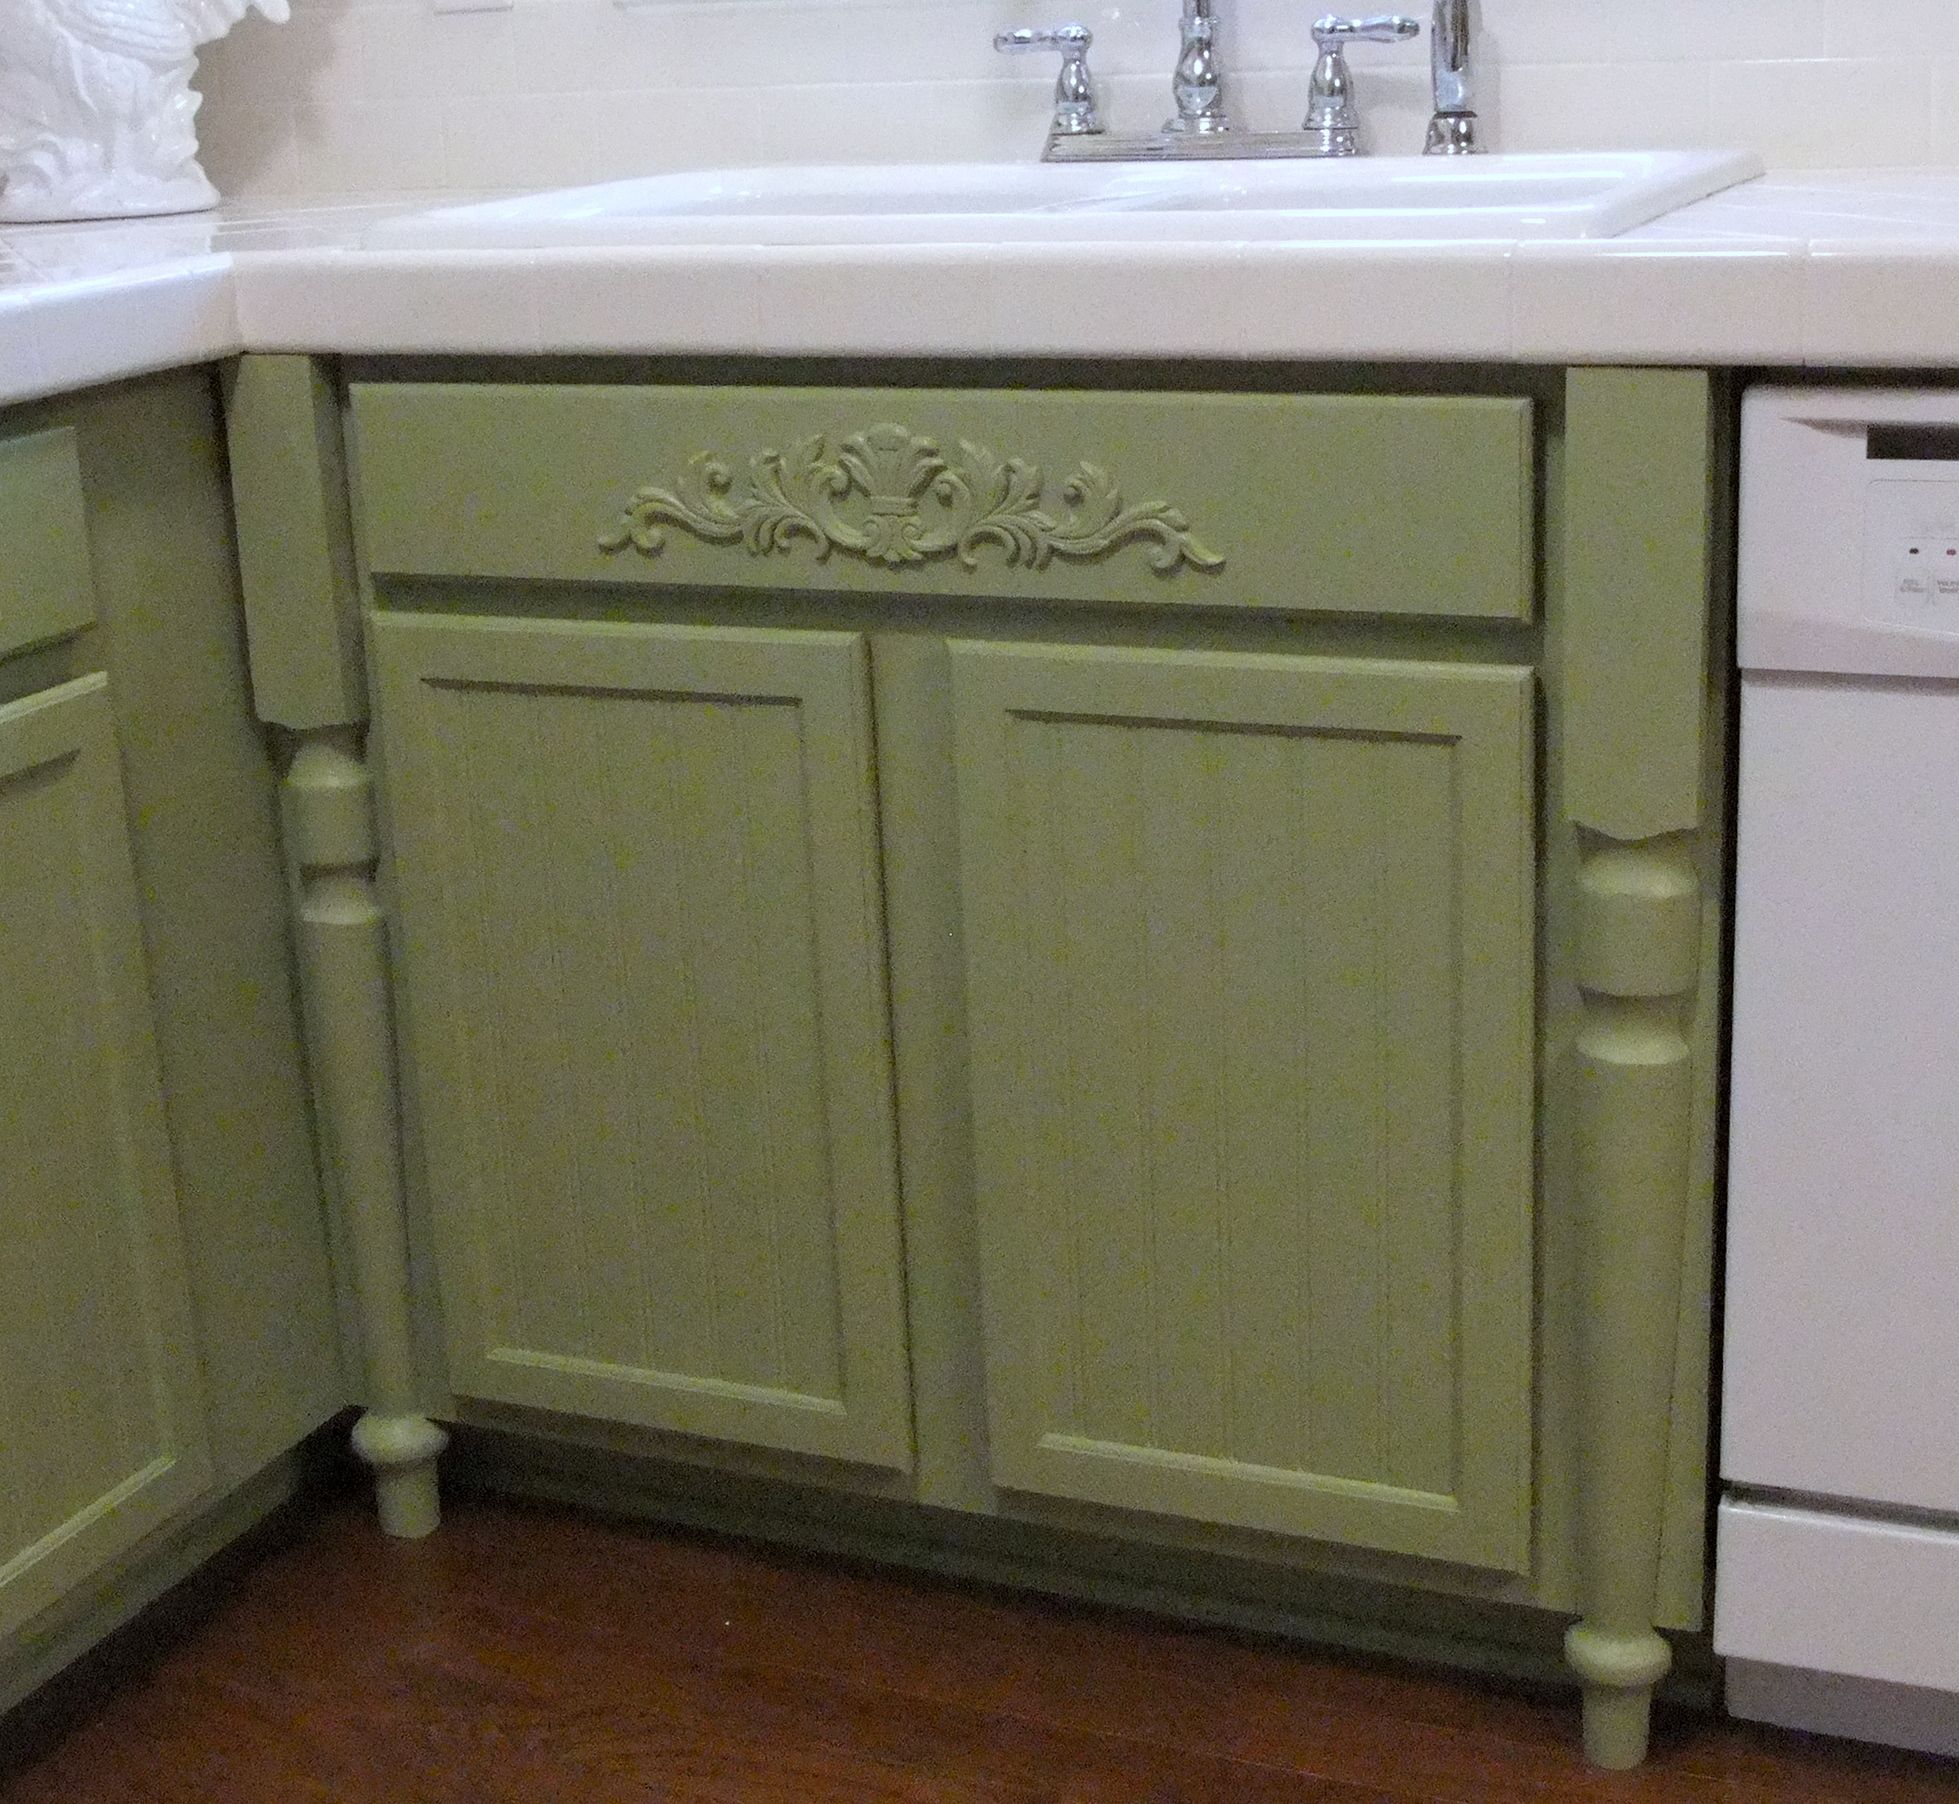 Kitchen Cabinets With Legs Marble Tables Love The On This Sink Cabinet Maybe Should